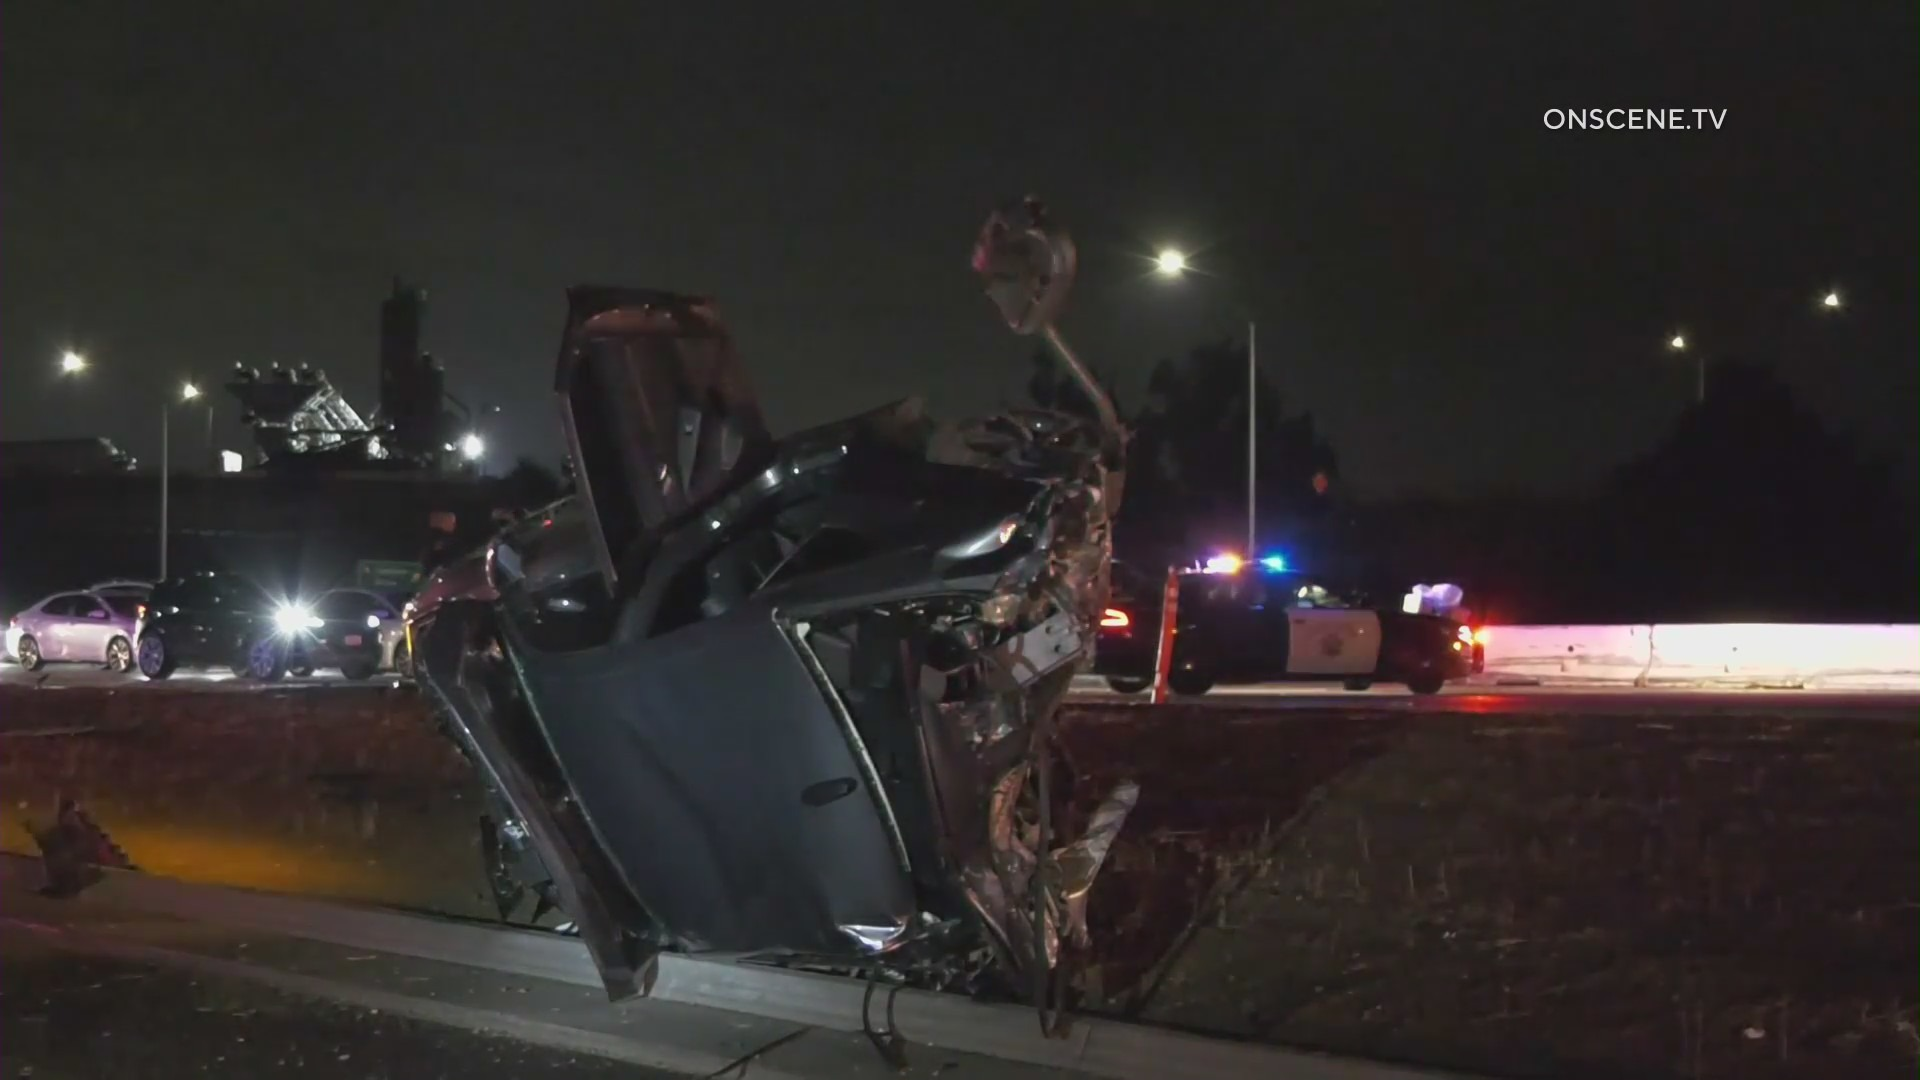 A severely damaged vehicle is seen after a deadly crash on the 10 Freeway in Pomona on Jan. 25, 2021. (Onscene.tv)